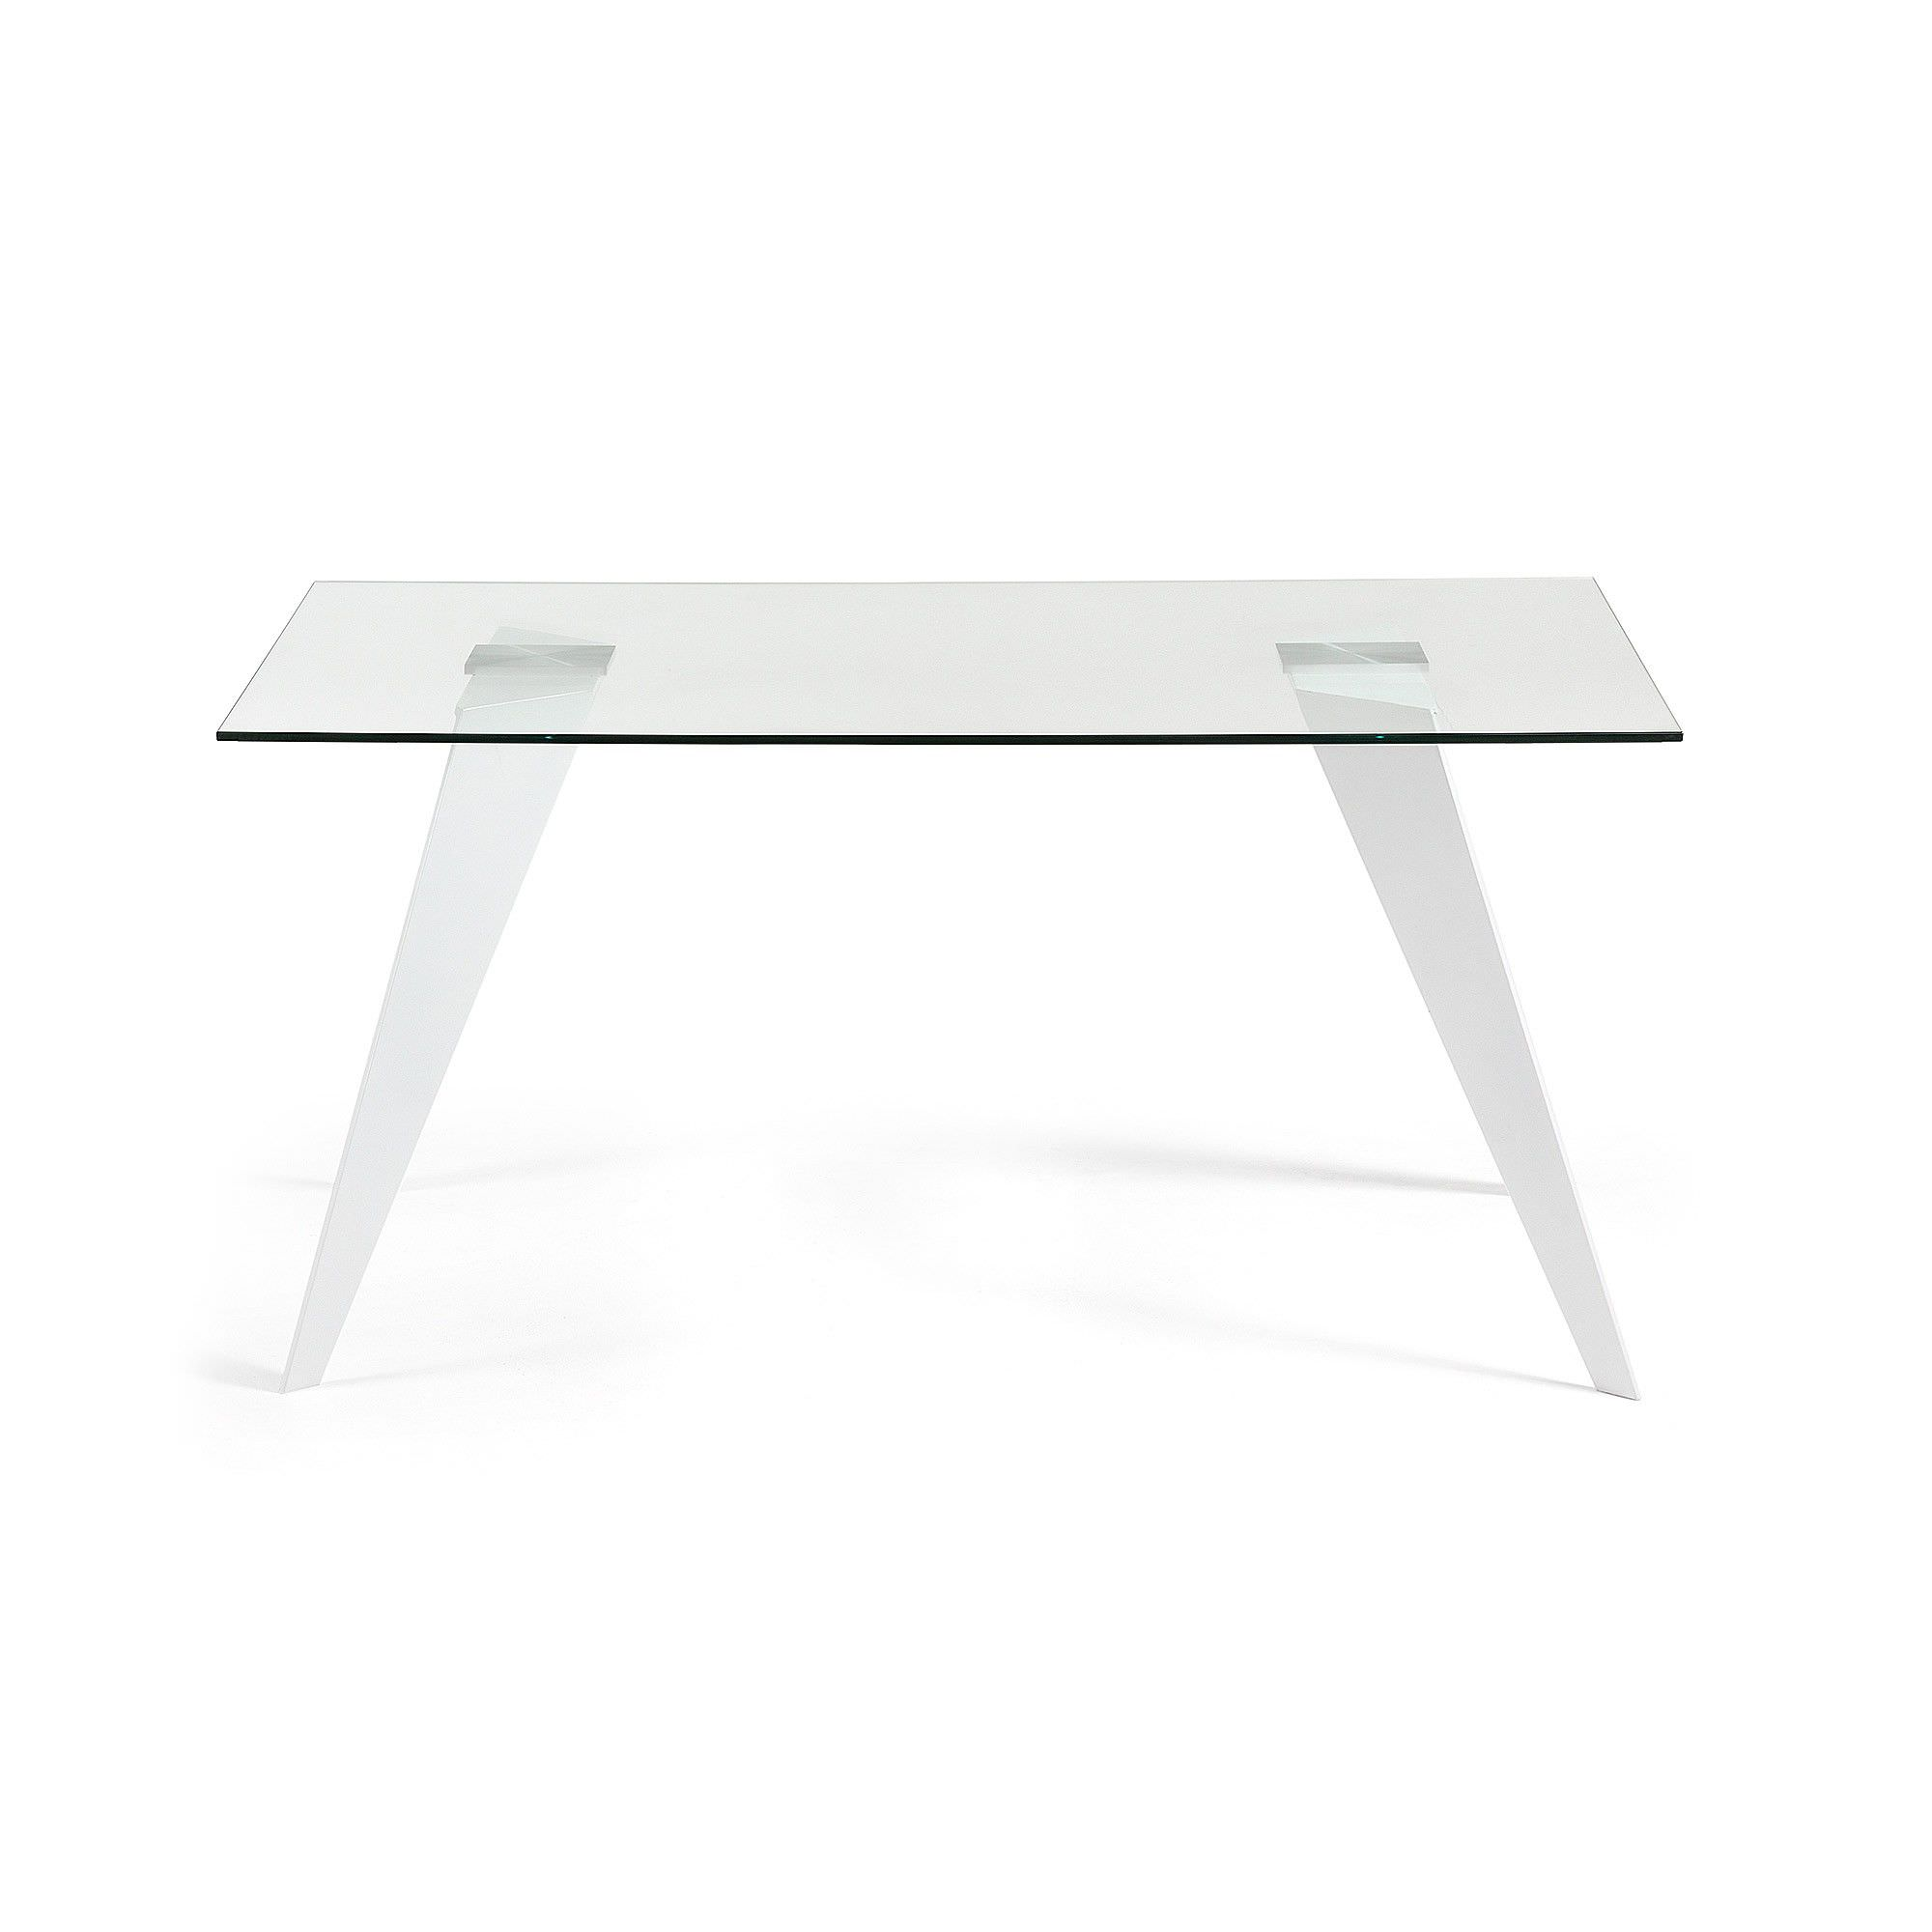 Neville Tempered Glass & Steel Dining Table, 180cm, Clear / White